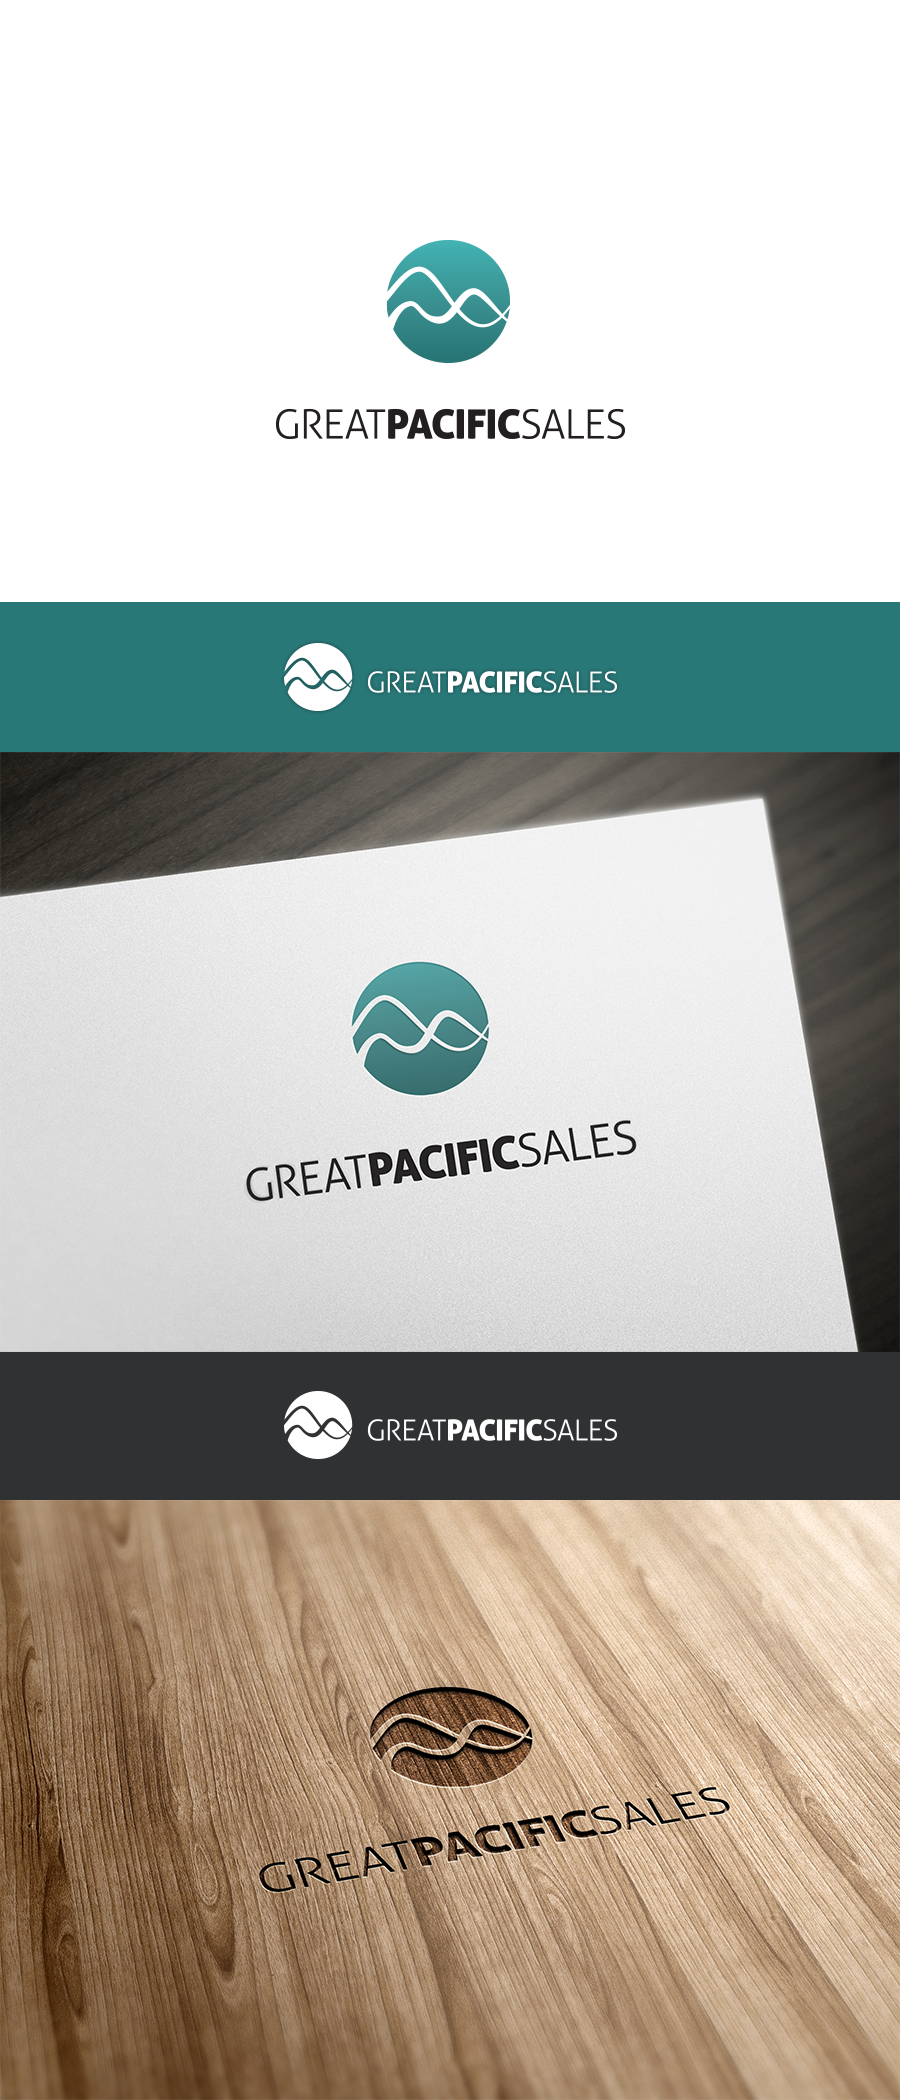 Great Pacific Sales needs a new logo